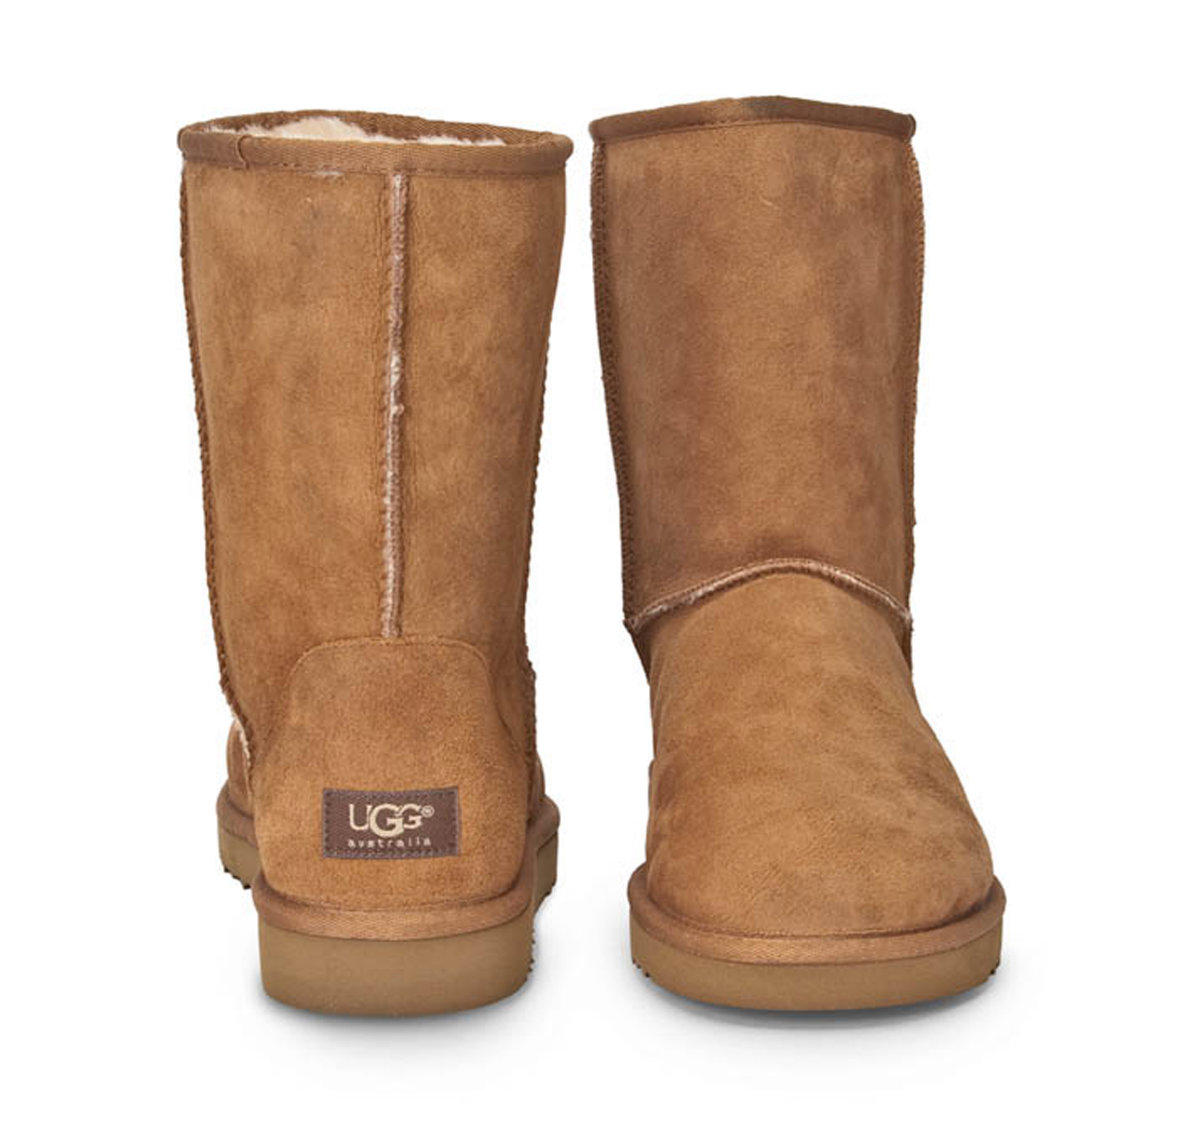 """Turns out the """"polar vortex,"""" which has led to record low temperatures in parts of the United States, did make Americans buy more """"Ugg boots"""" this winter, ..."""